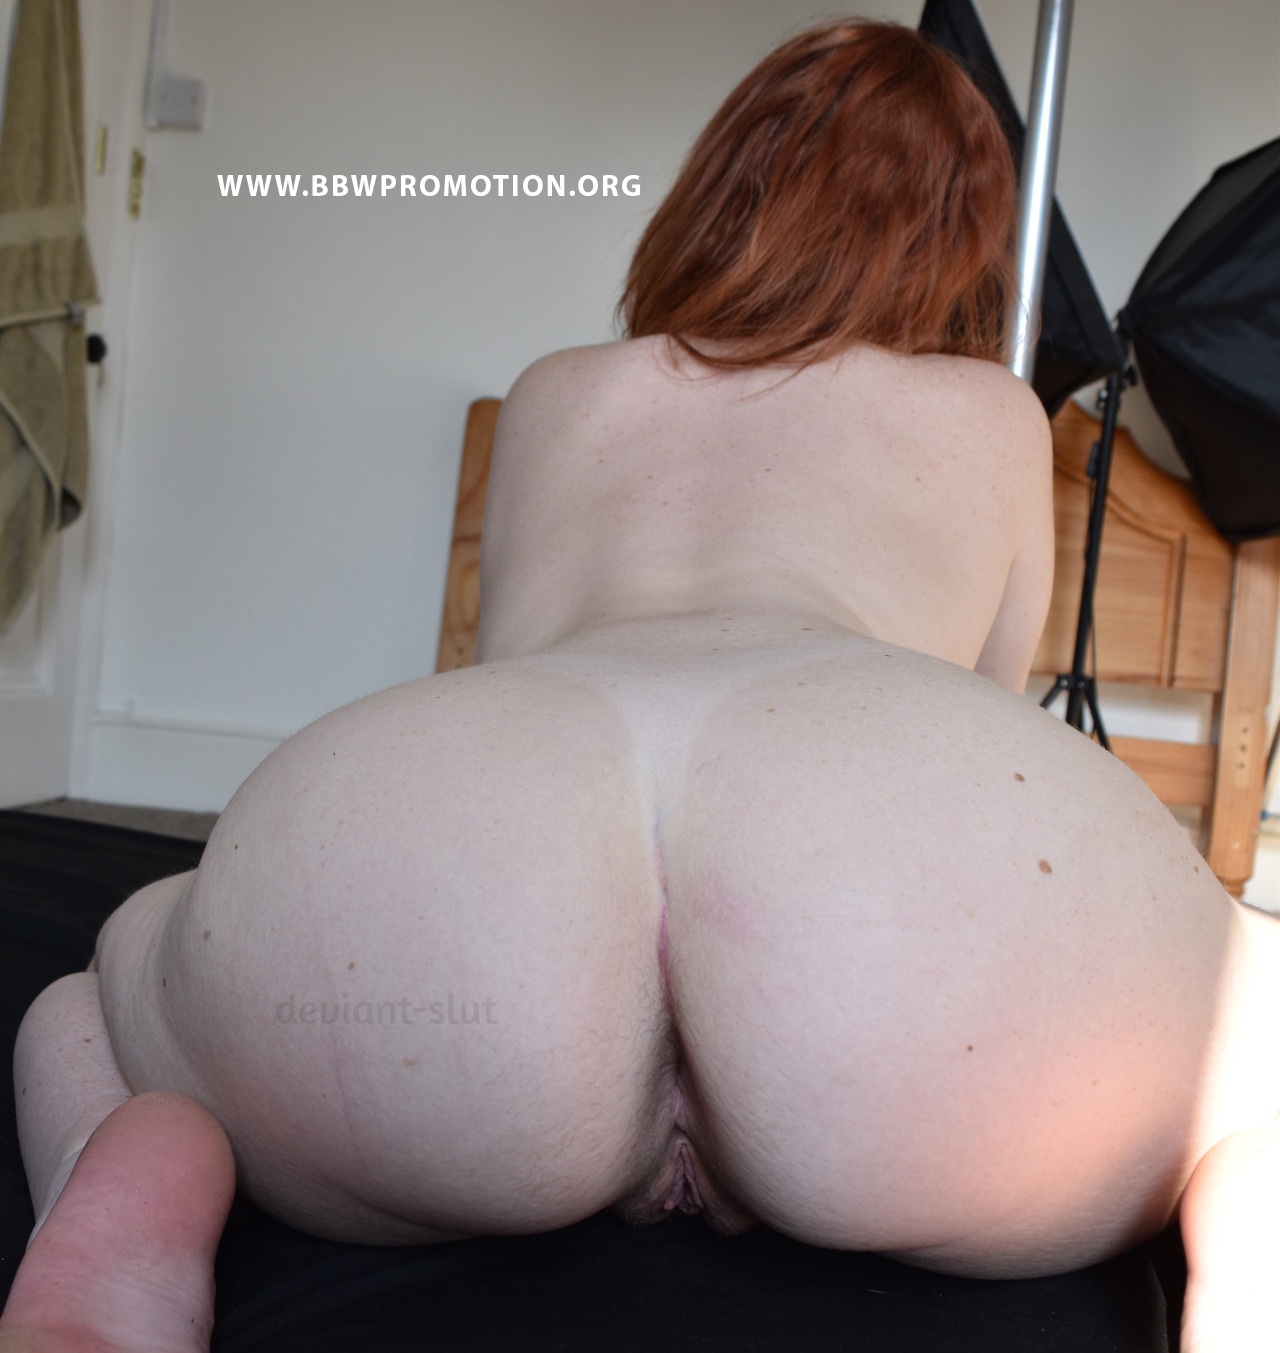 Pawg Amateur Cam Girls 5-2457